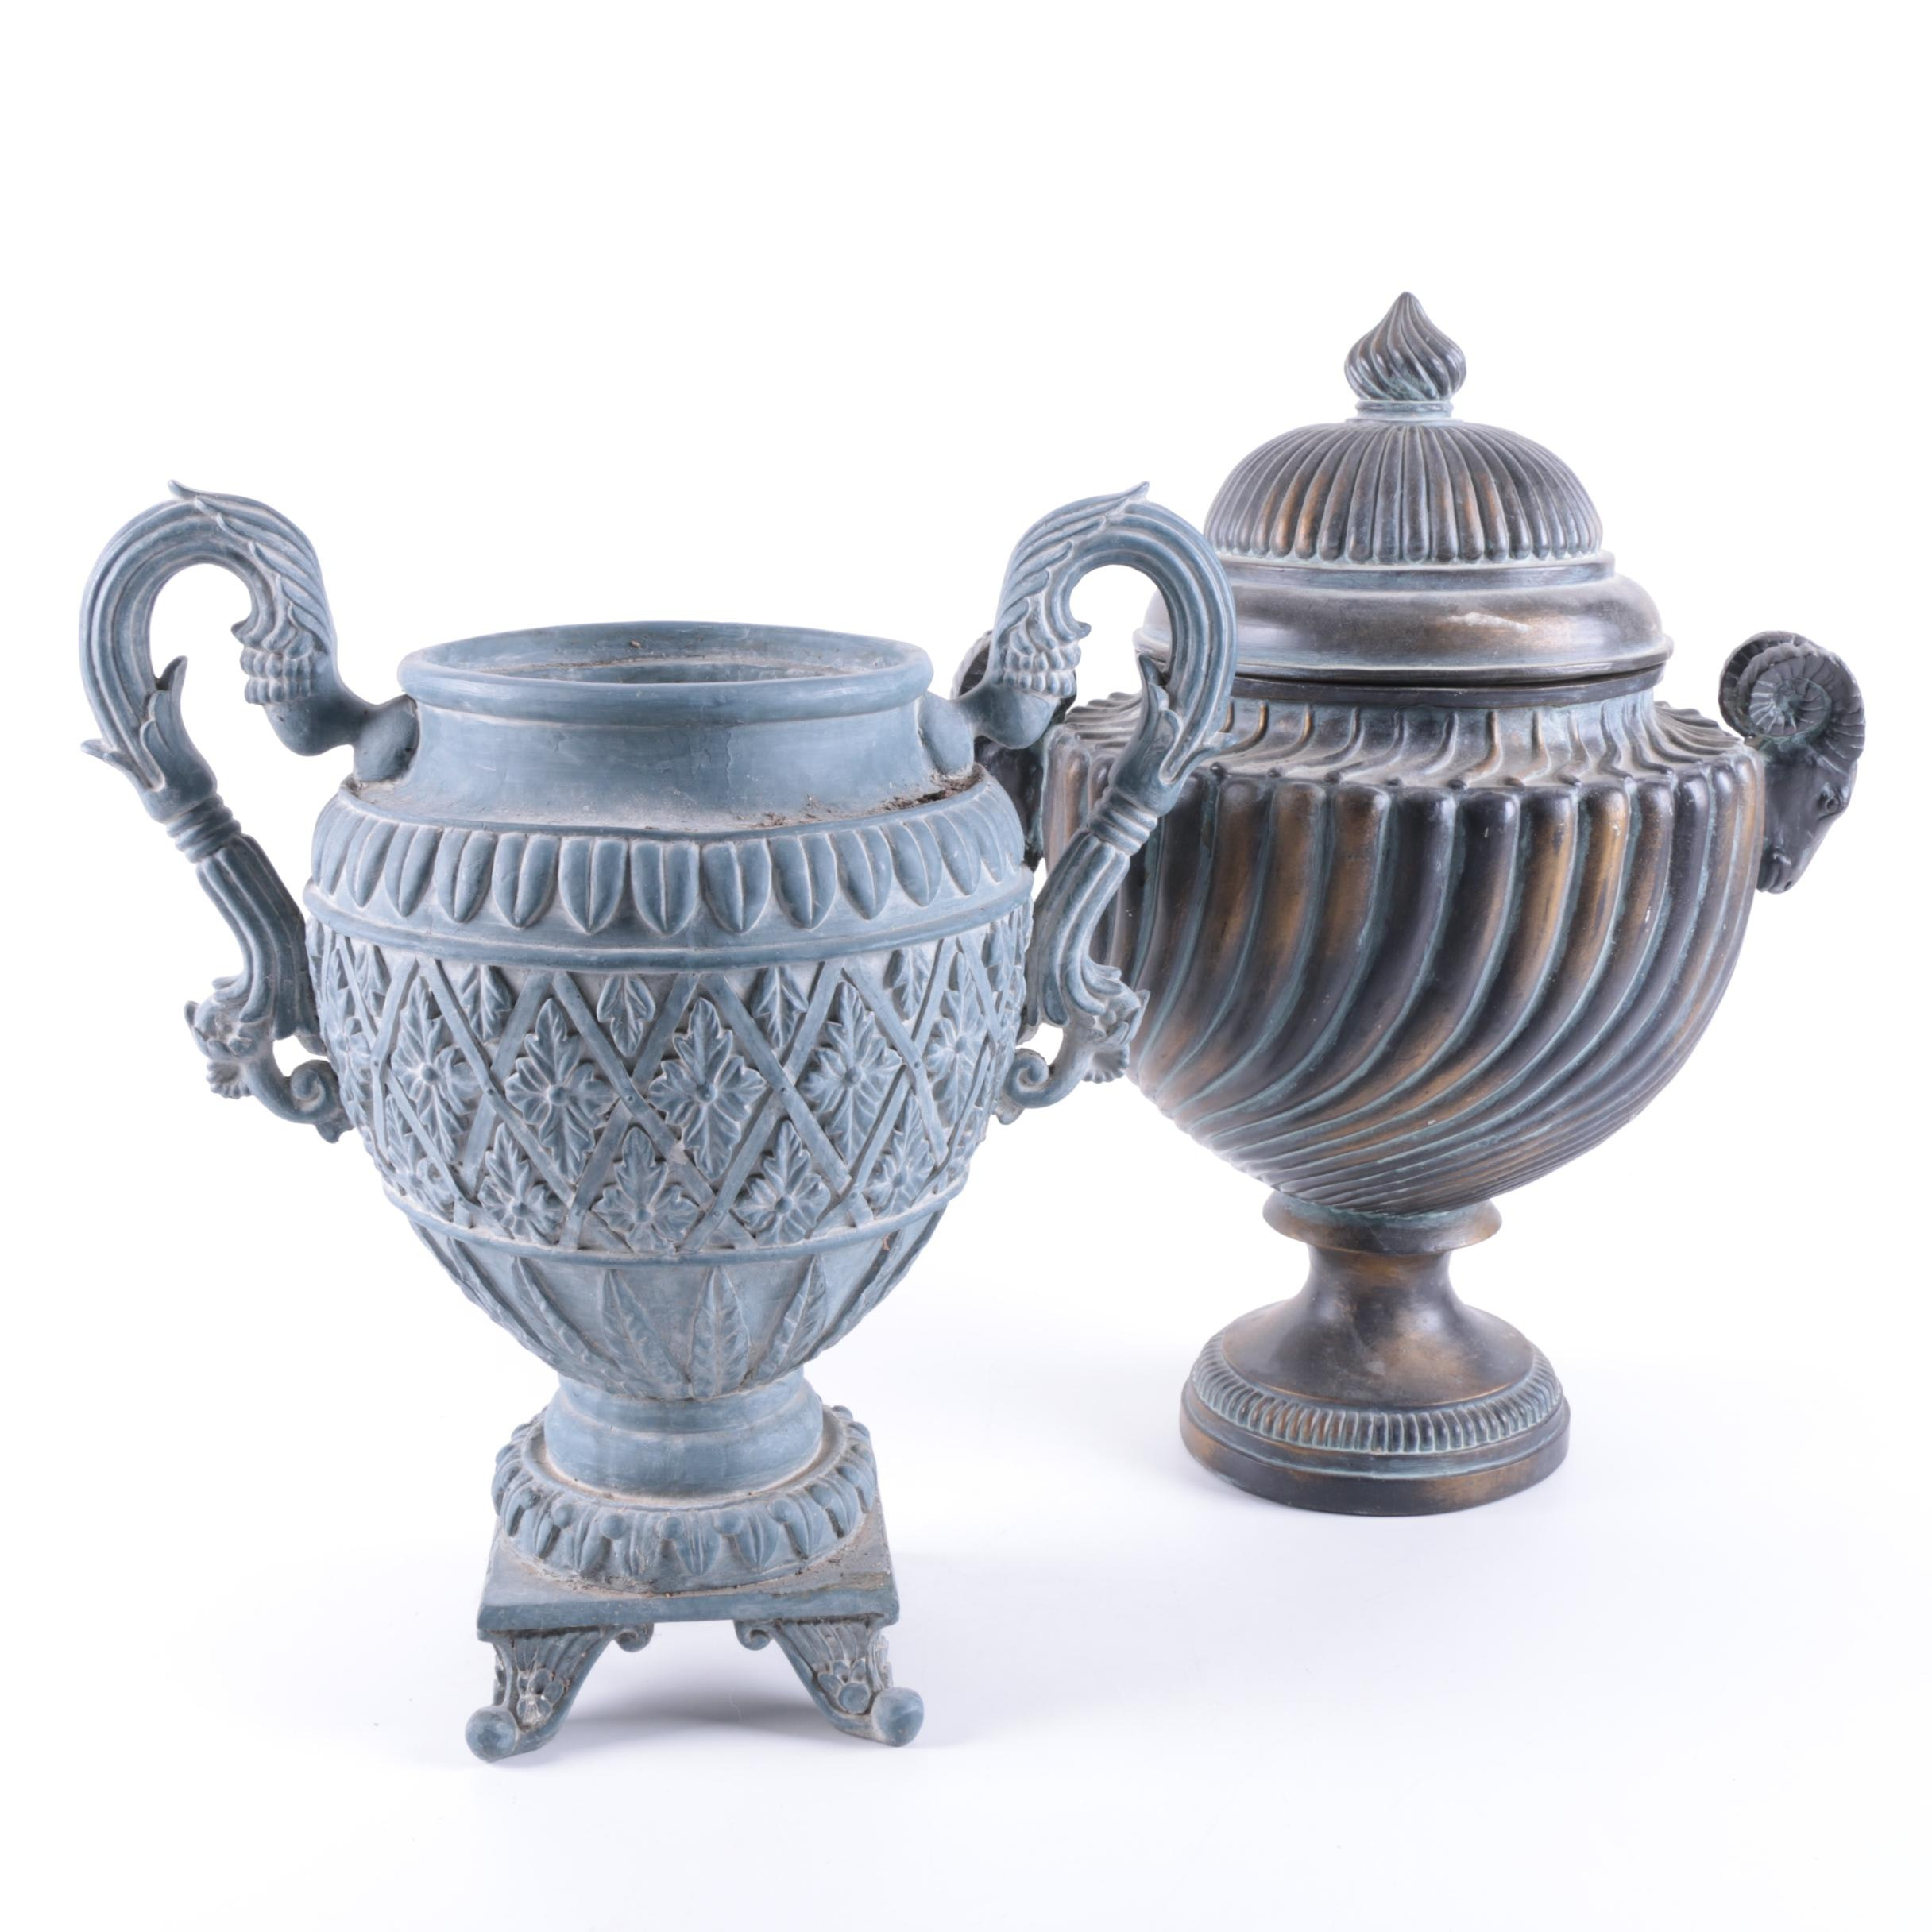 Decorative Urns